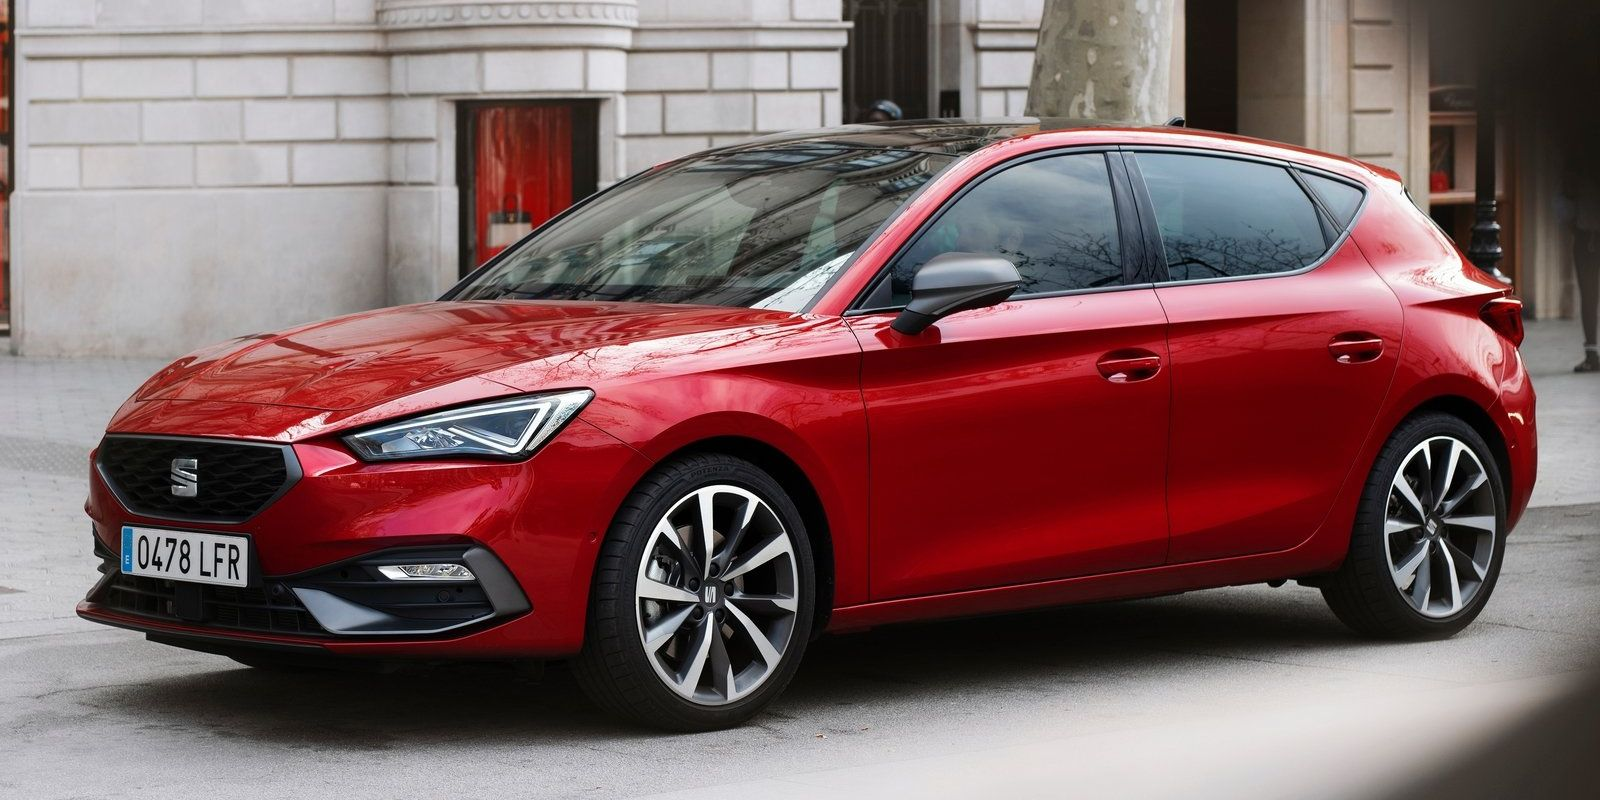 10 Things We Just Learned About The New SEAT Leon | HotCars